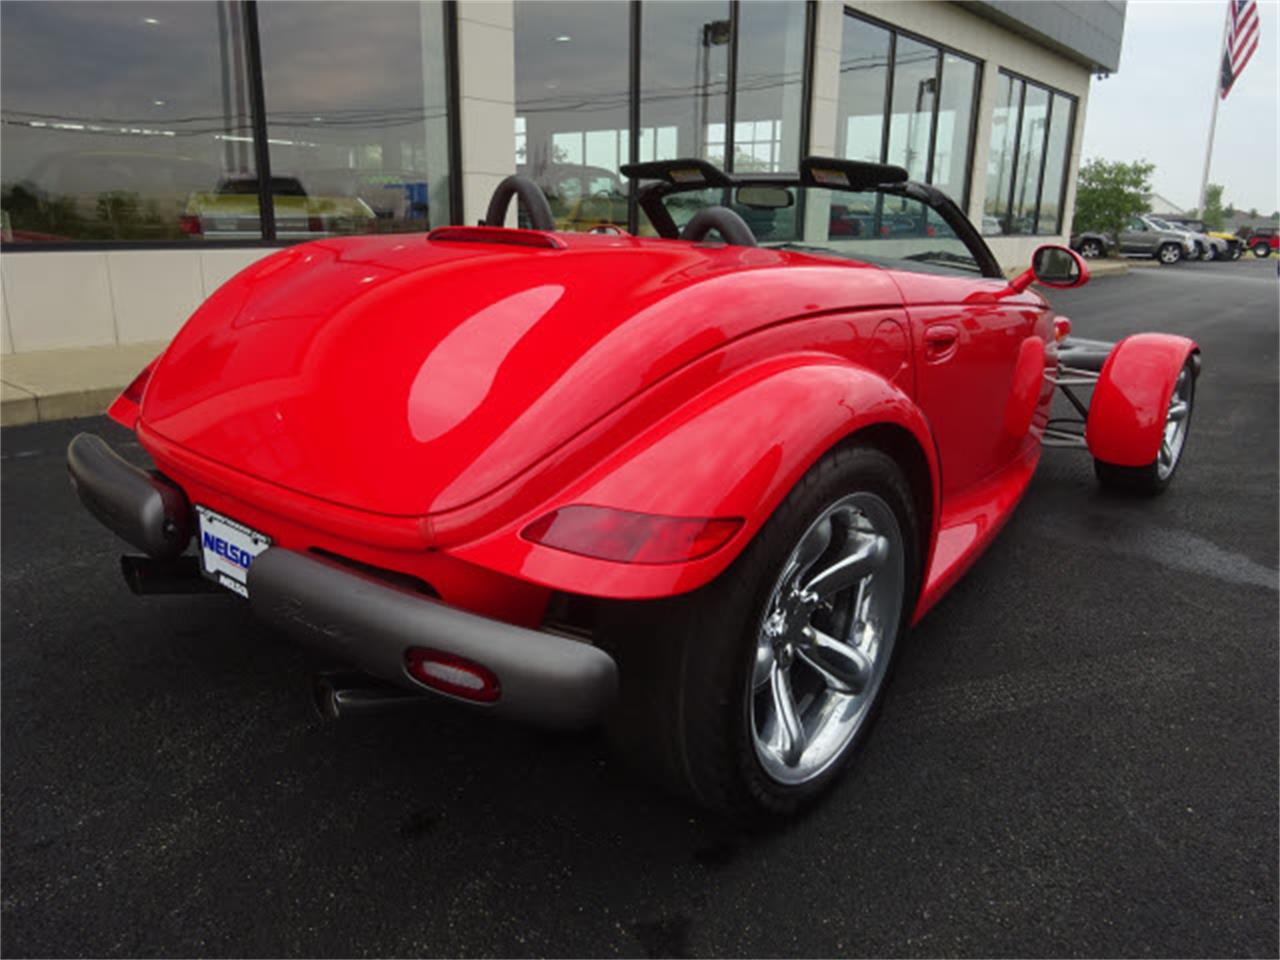 Large Picture of '99 Prowler located in Ohio - $29,999.00 Offered by Nelson Automotive, Ltd. - JPAP